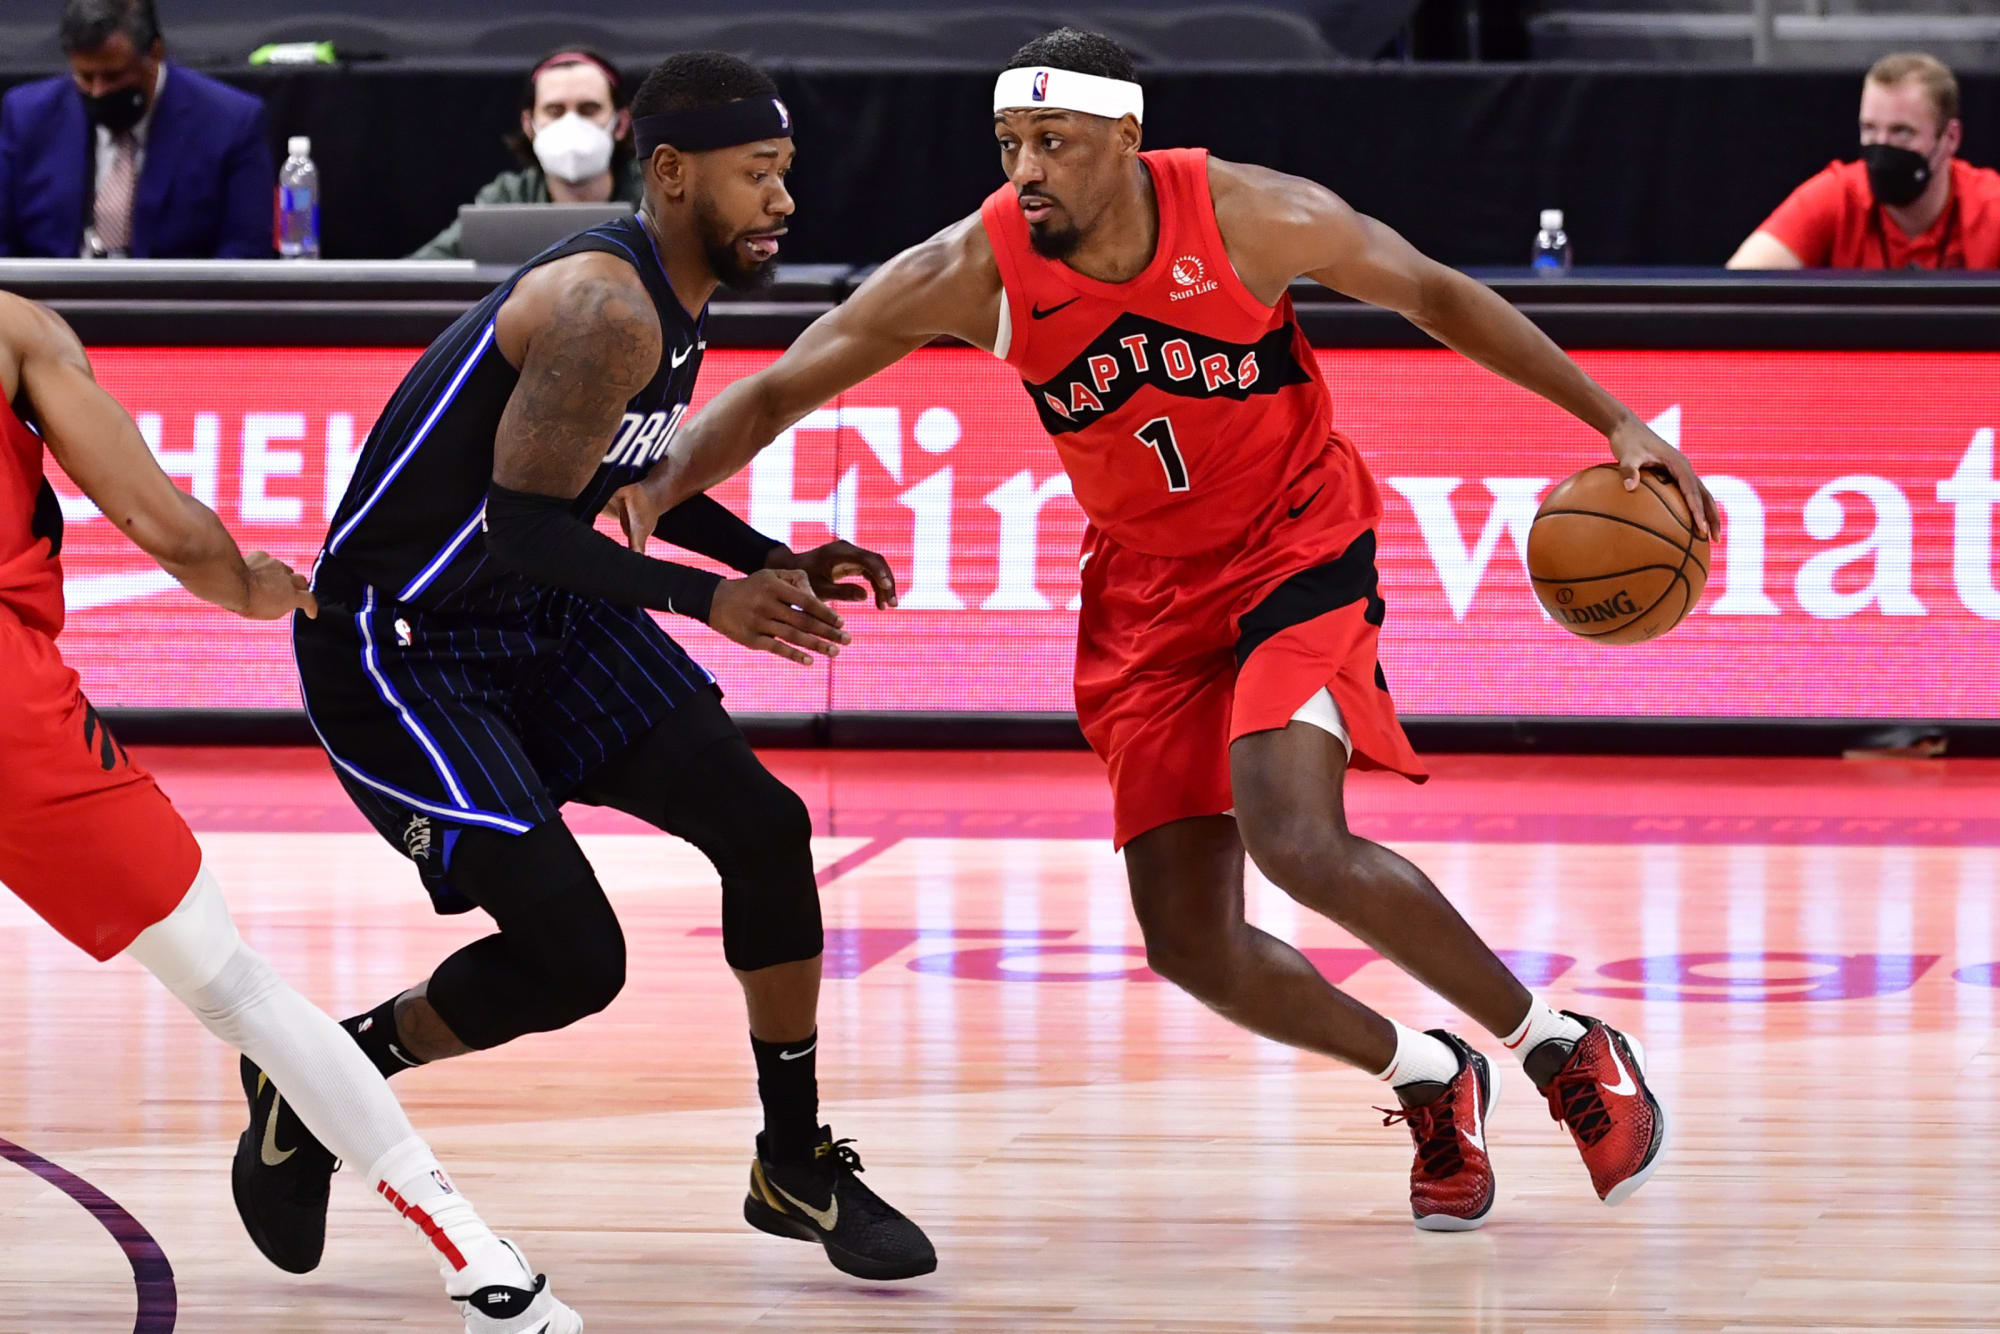 Toronto Raptors: Paul Watson and Yuta Watanabe dominating proves it's impossible to tank